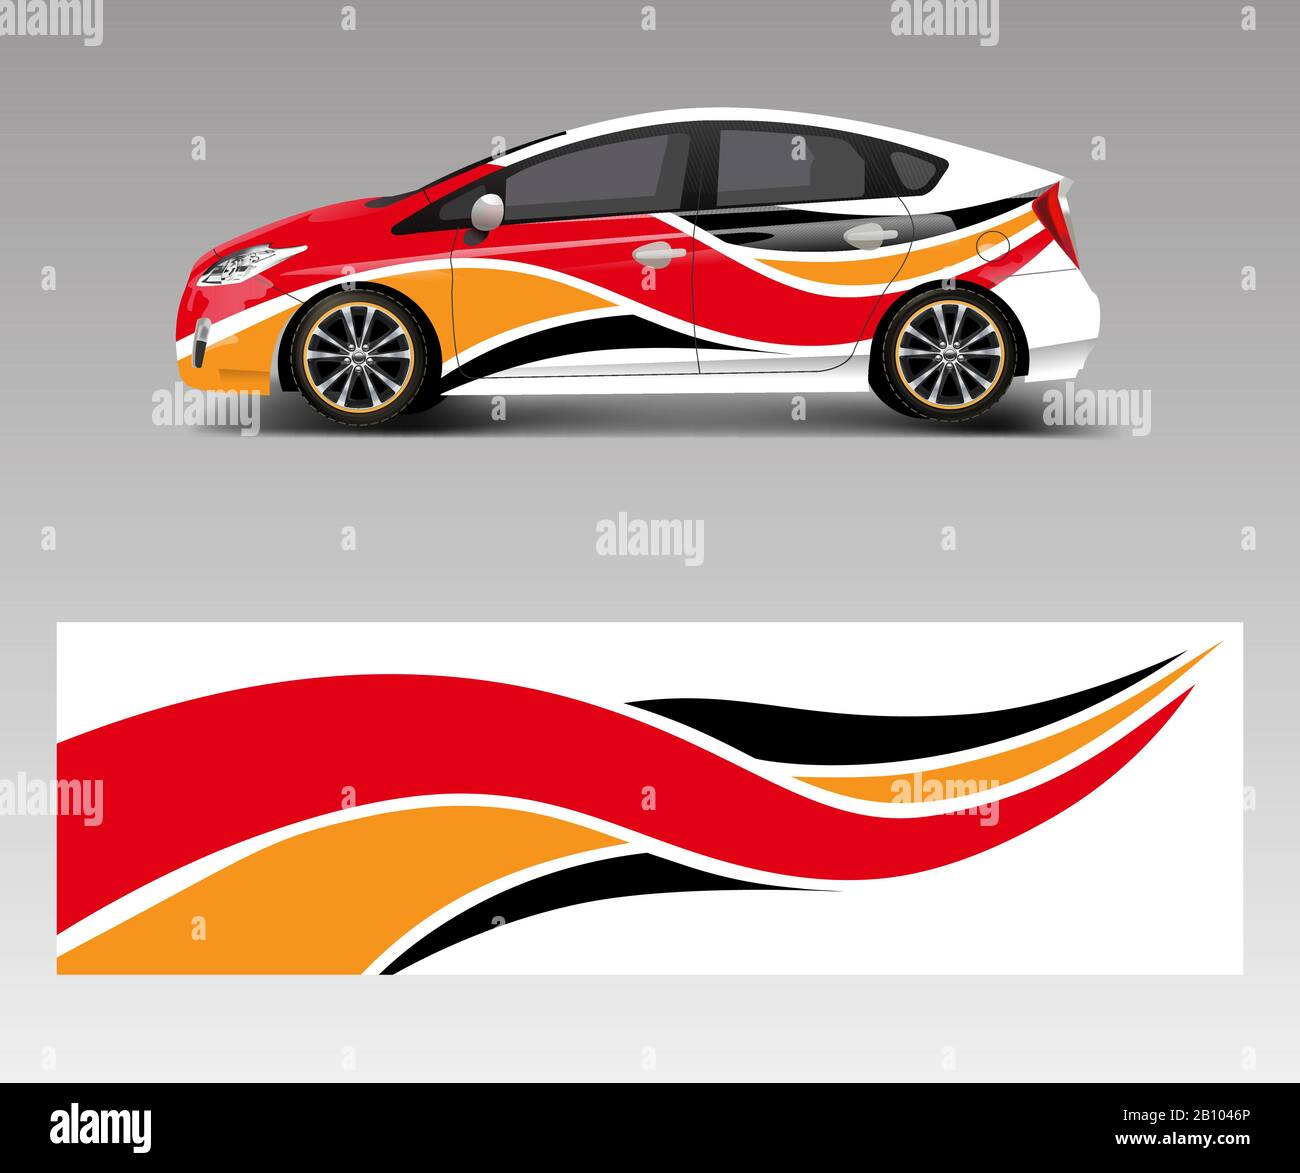 Car Decal Graphic Vector Wrap Vinyl Sticker Graphic Abstract Wave Shape Designs For Branding Race And Drift Car Template Design Vector Stock Vector Image Art Alamy